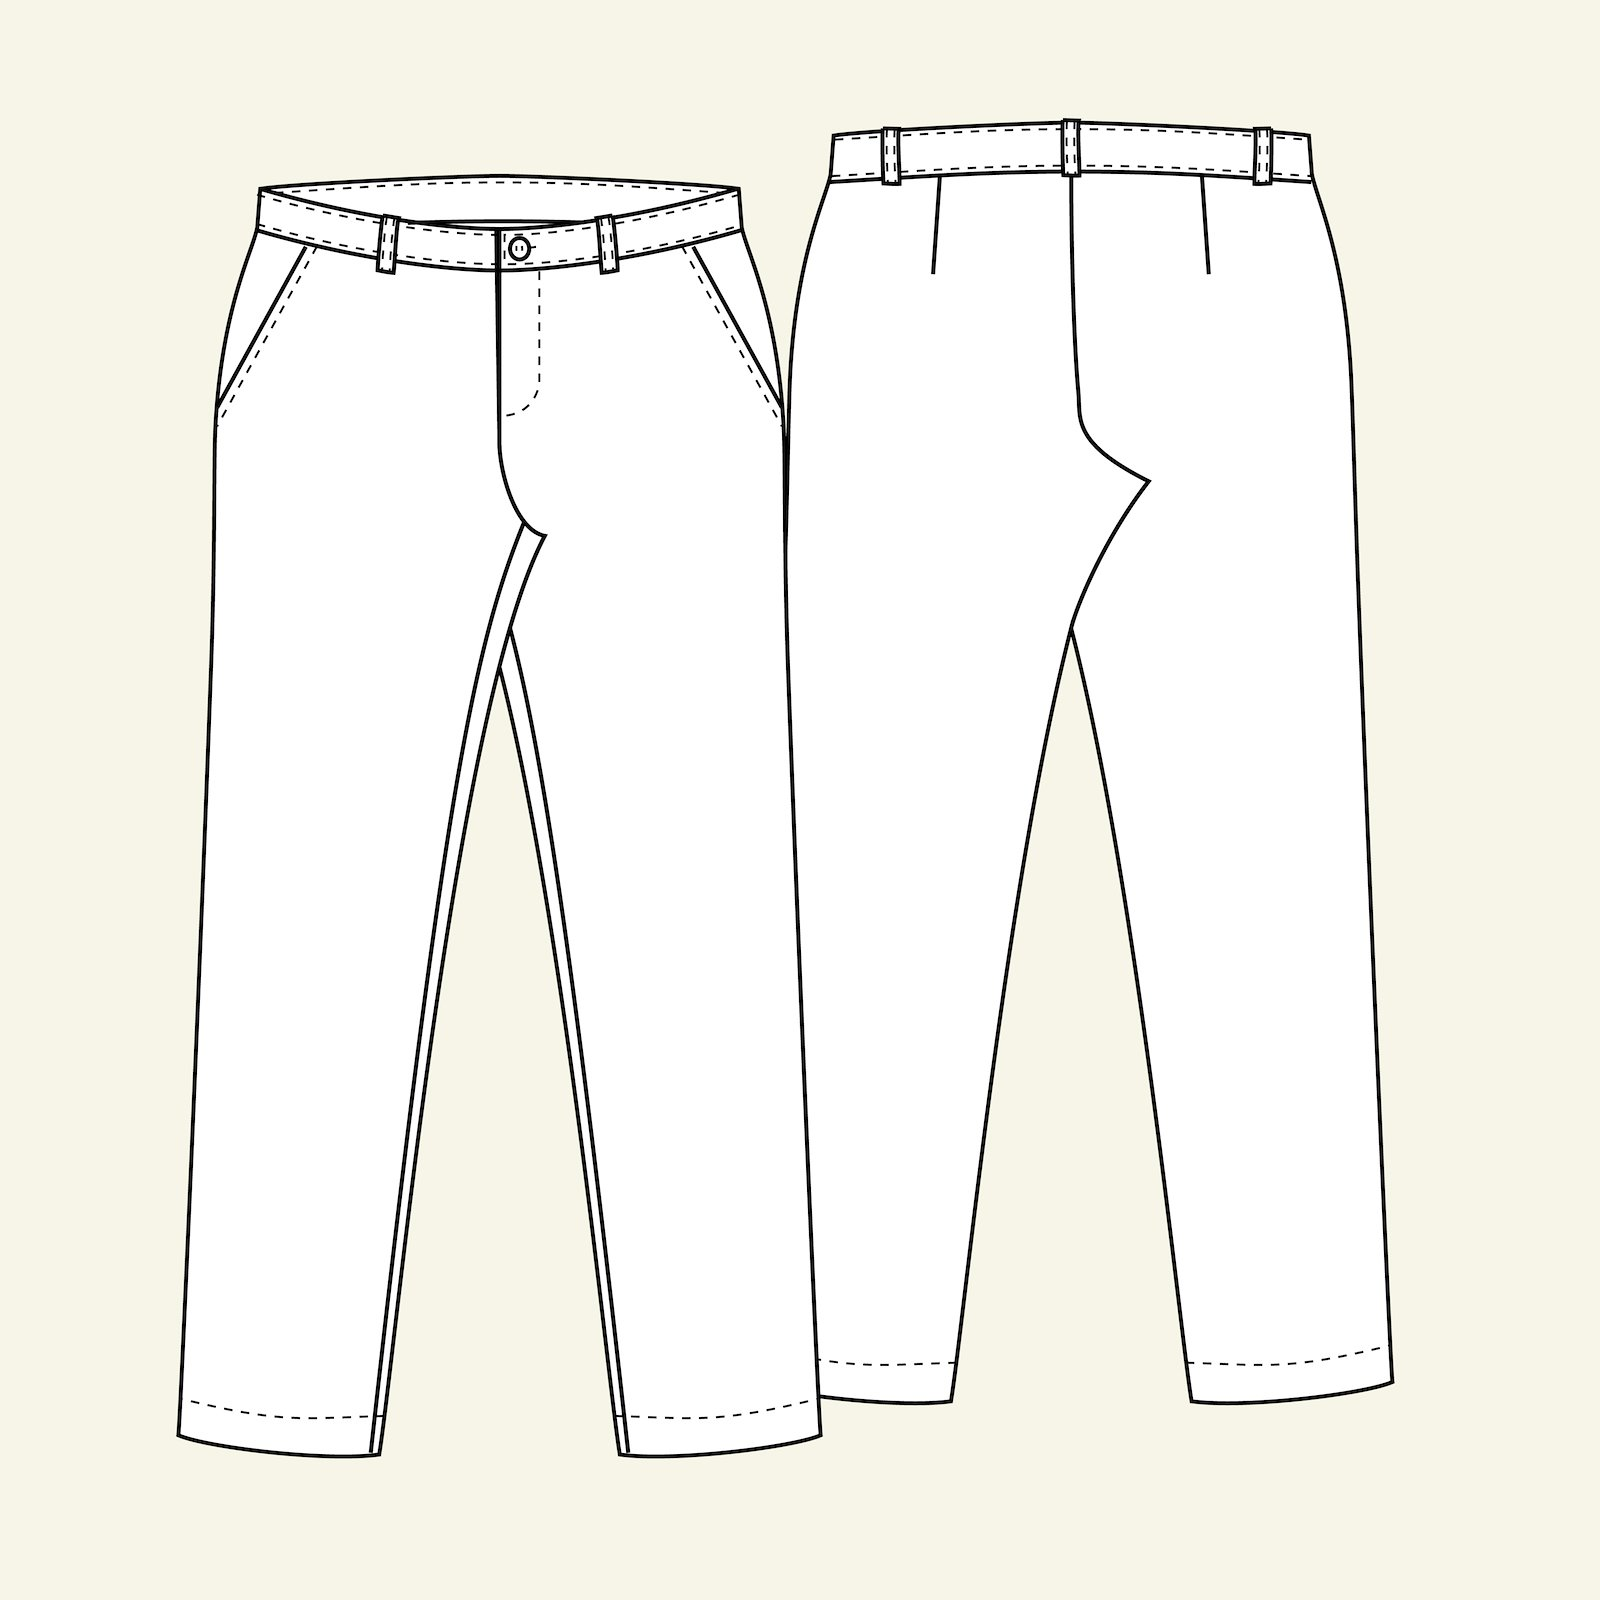 Trousers, 44/16 p20033_pack